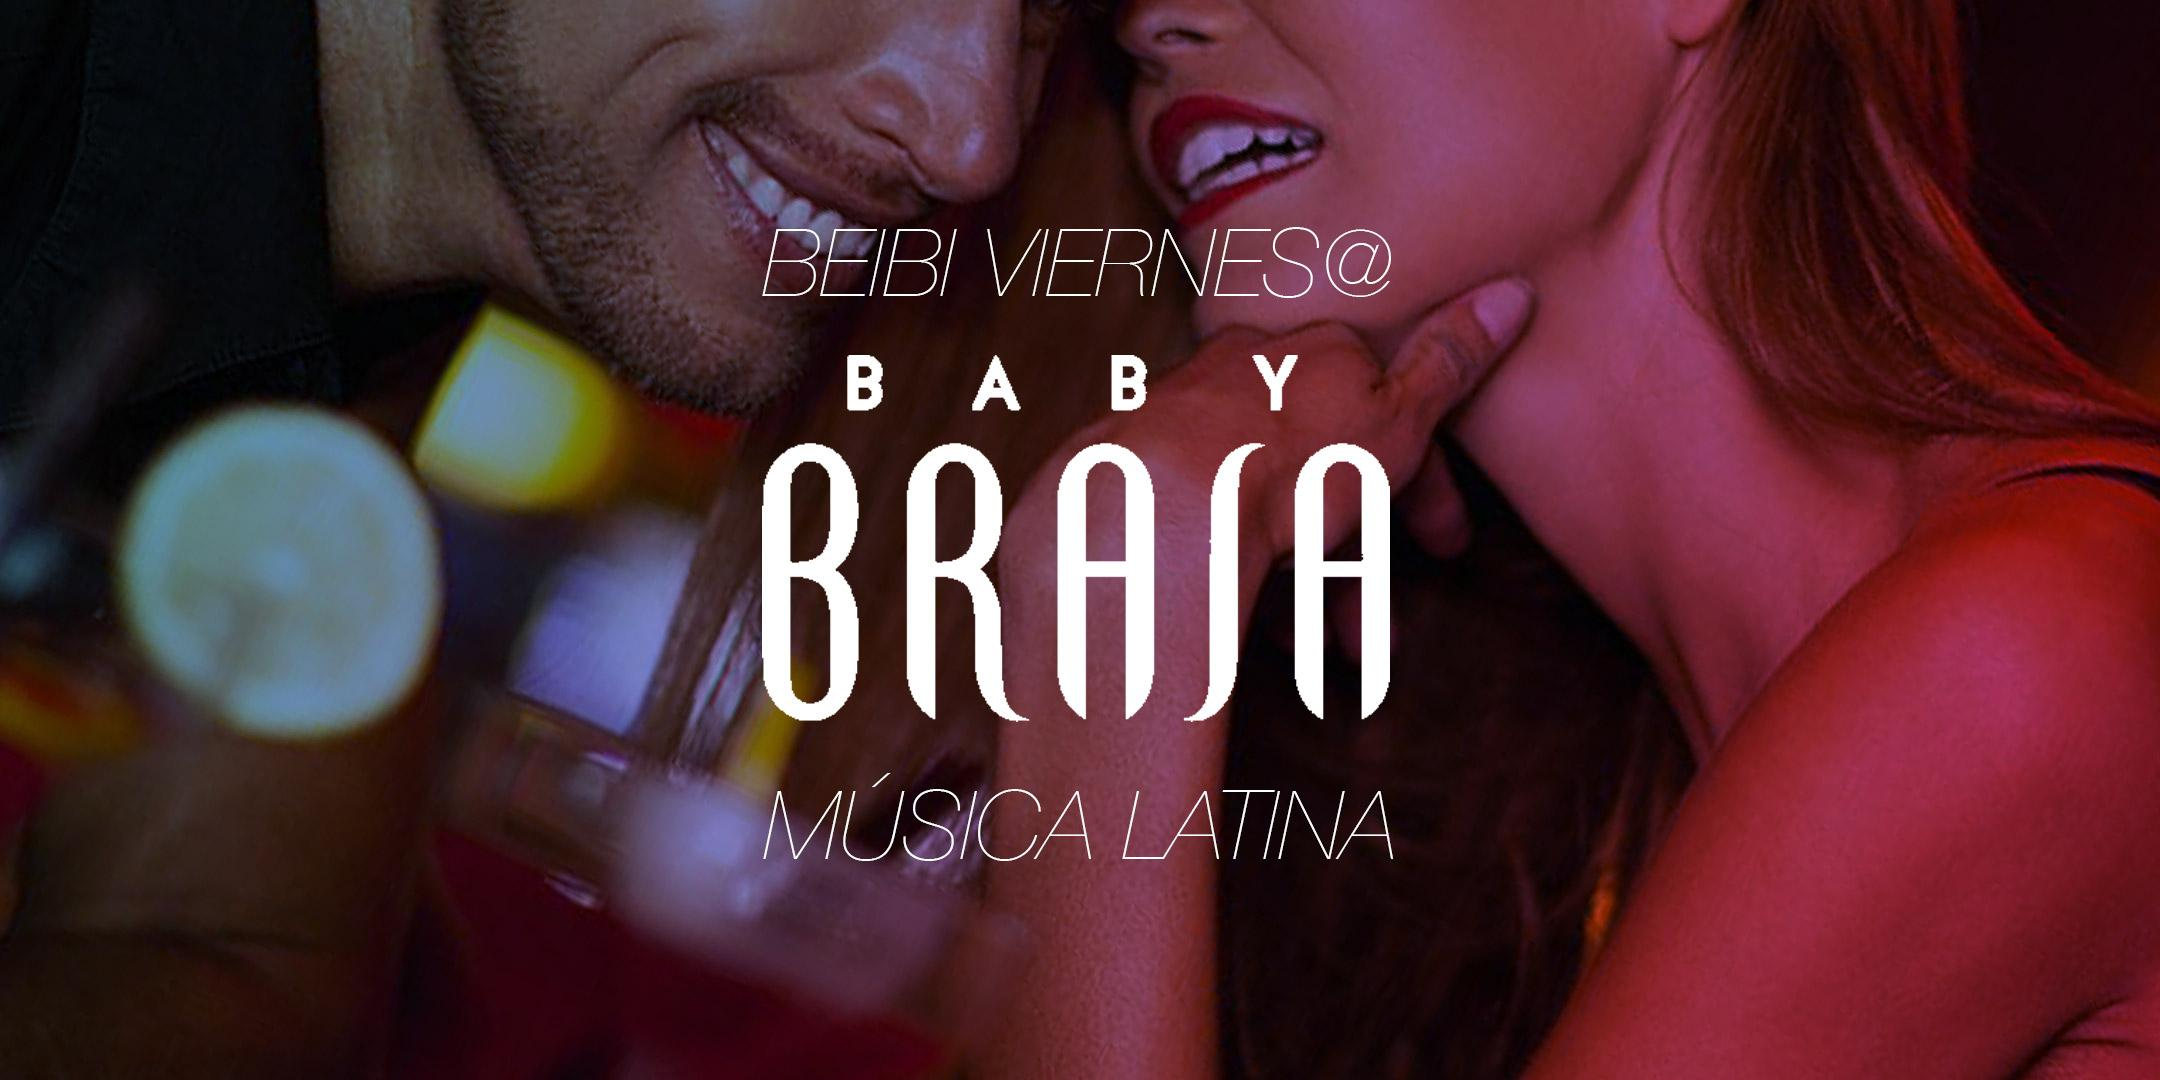 Beibi Viernes @Baby Brasa — Música Latina every Friday in NYC